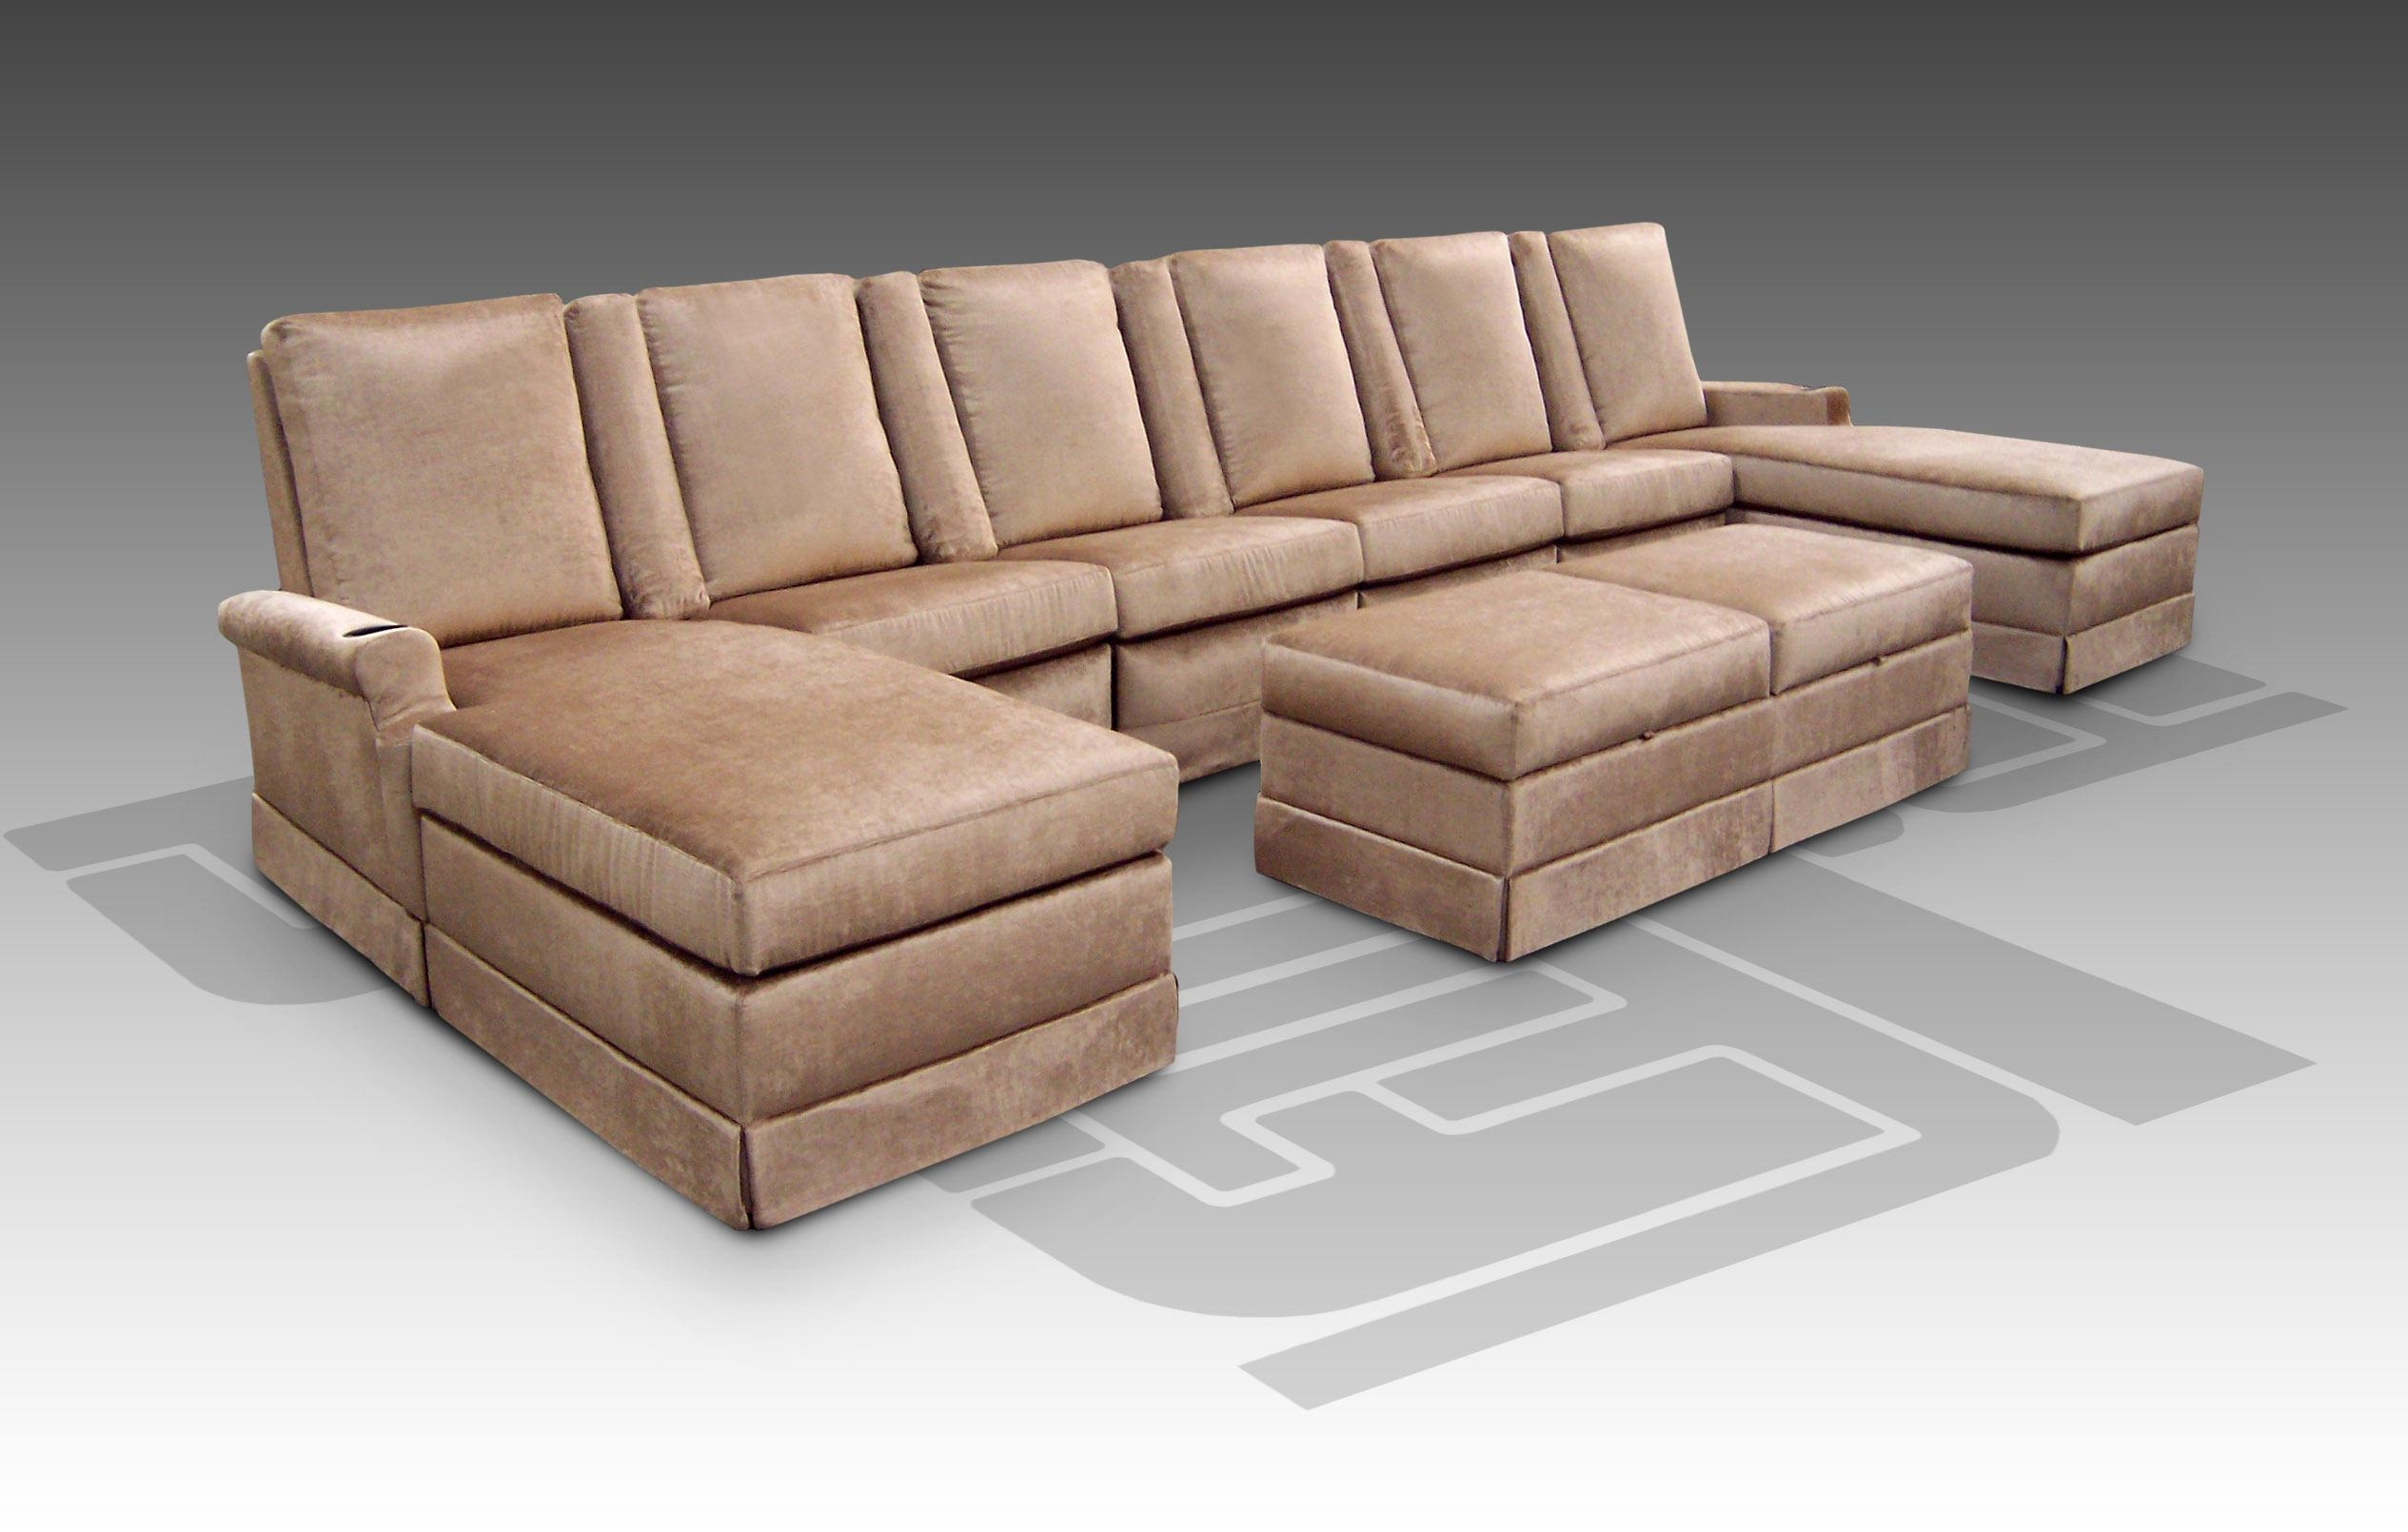 Movie Theater Sectional Sofas – Leather Sectional Sofa Regarding Theatre Sectional Sofas (Image 13 of 20)